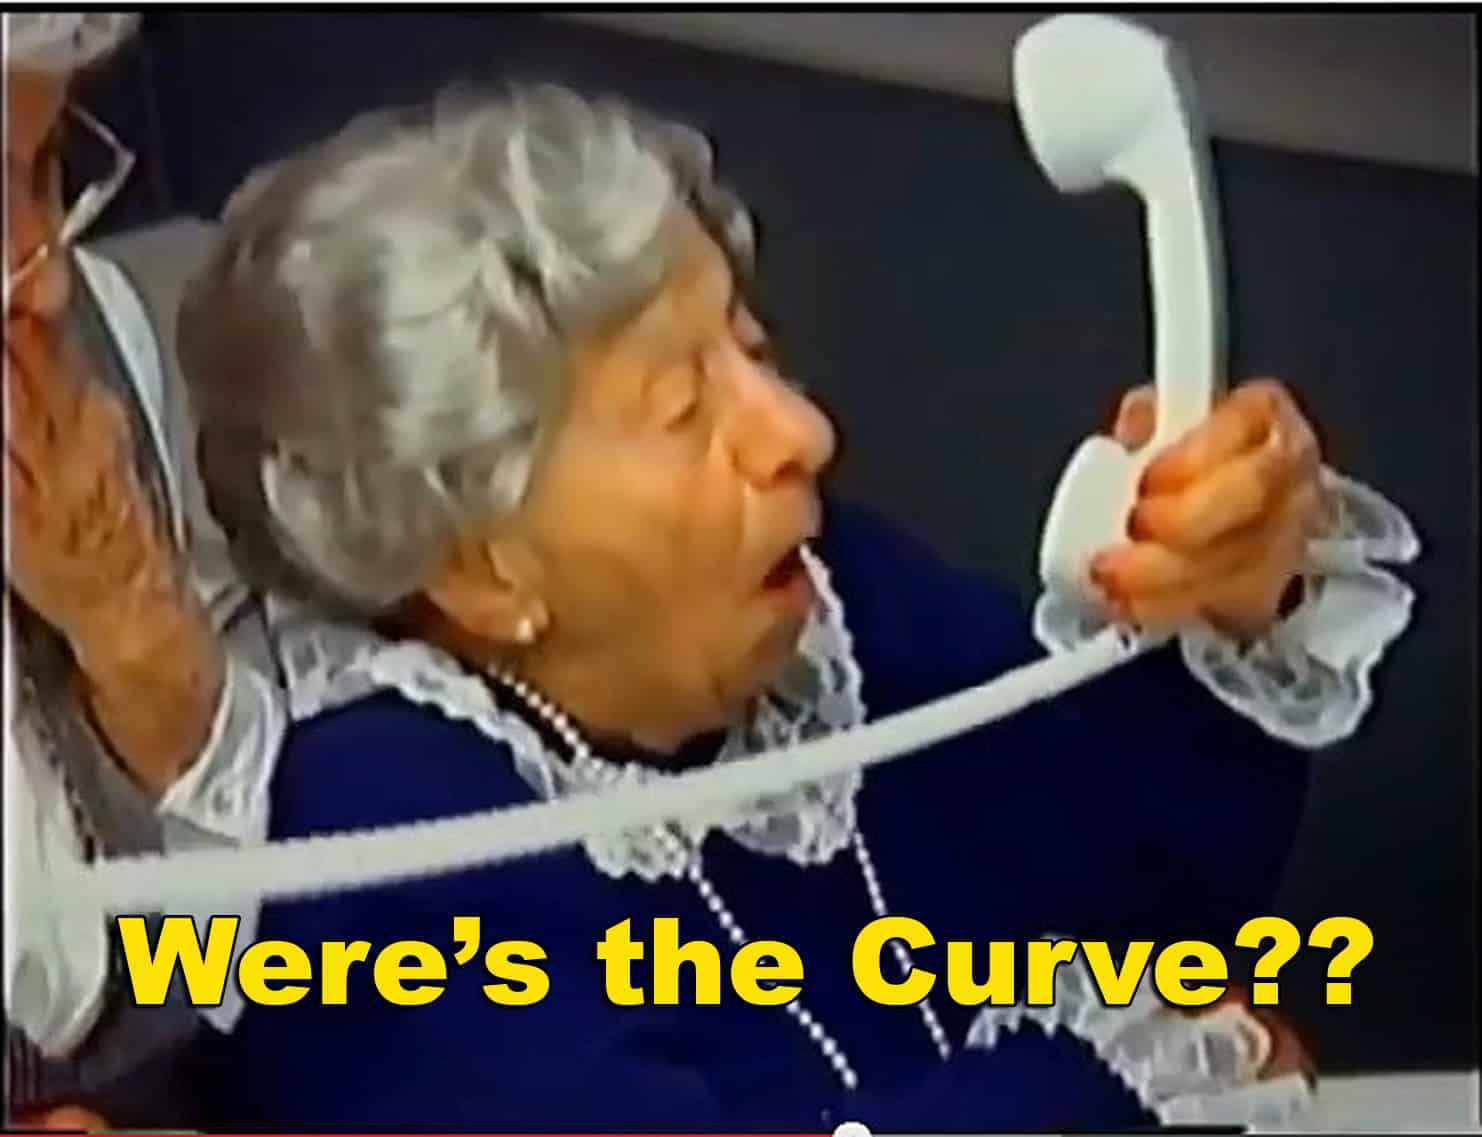 In Search of THE CURVE